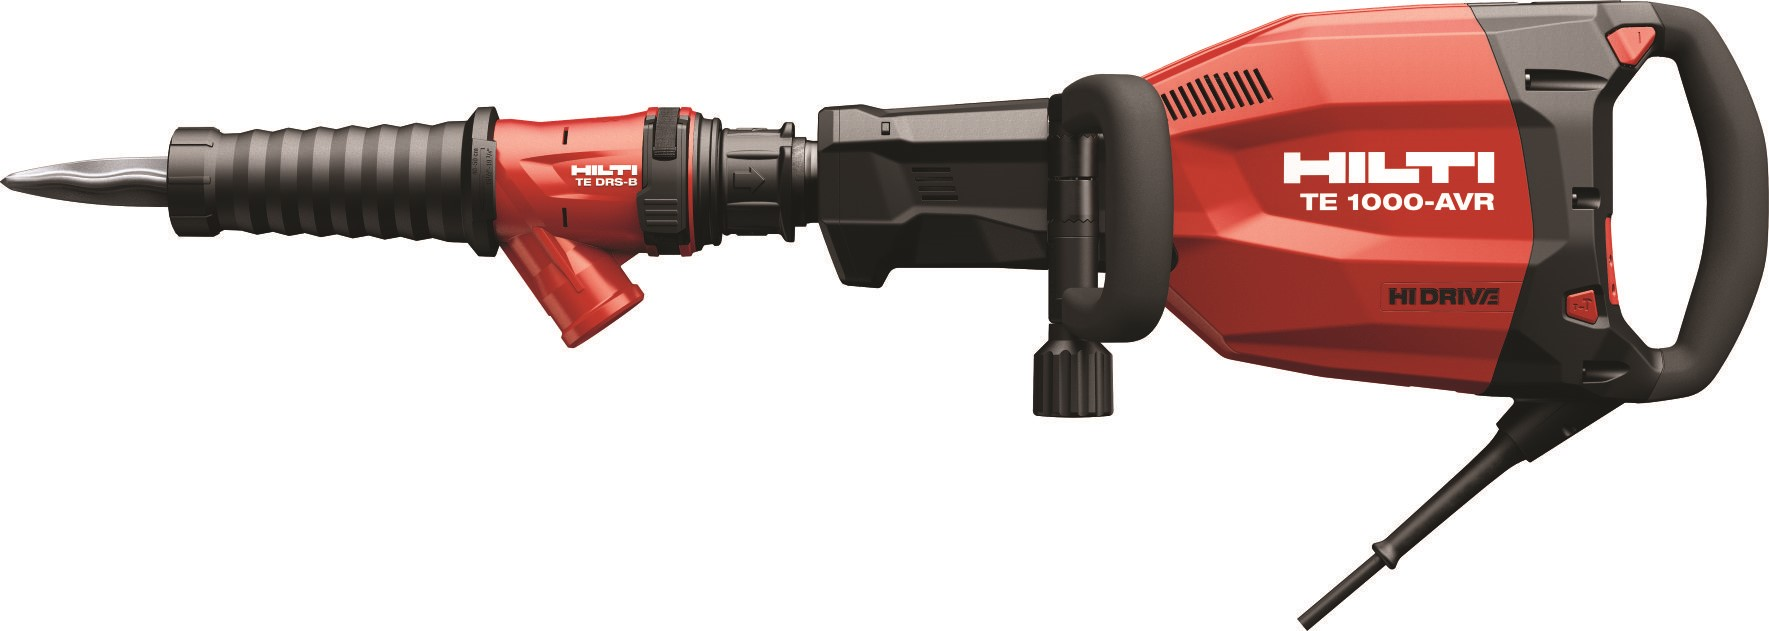 Hilti Electric Drills & Breakers Image